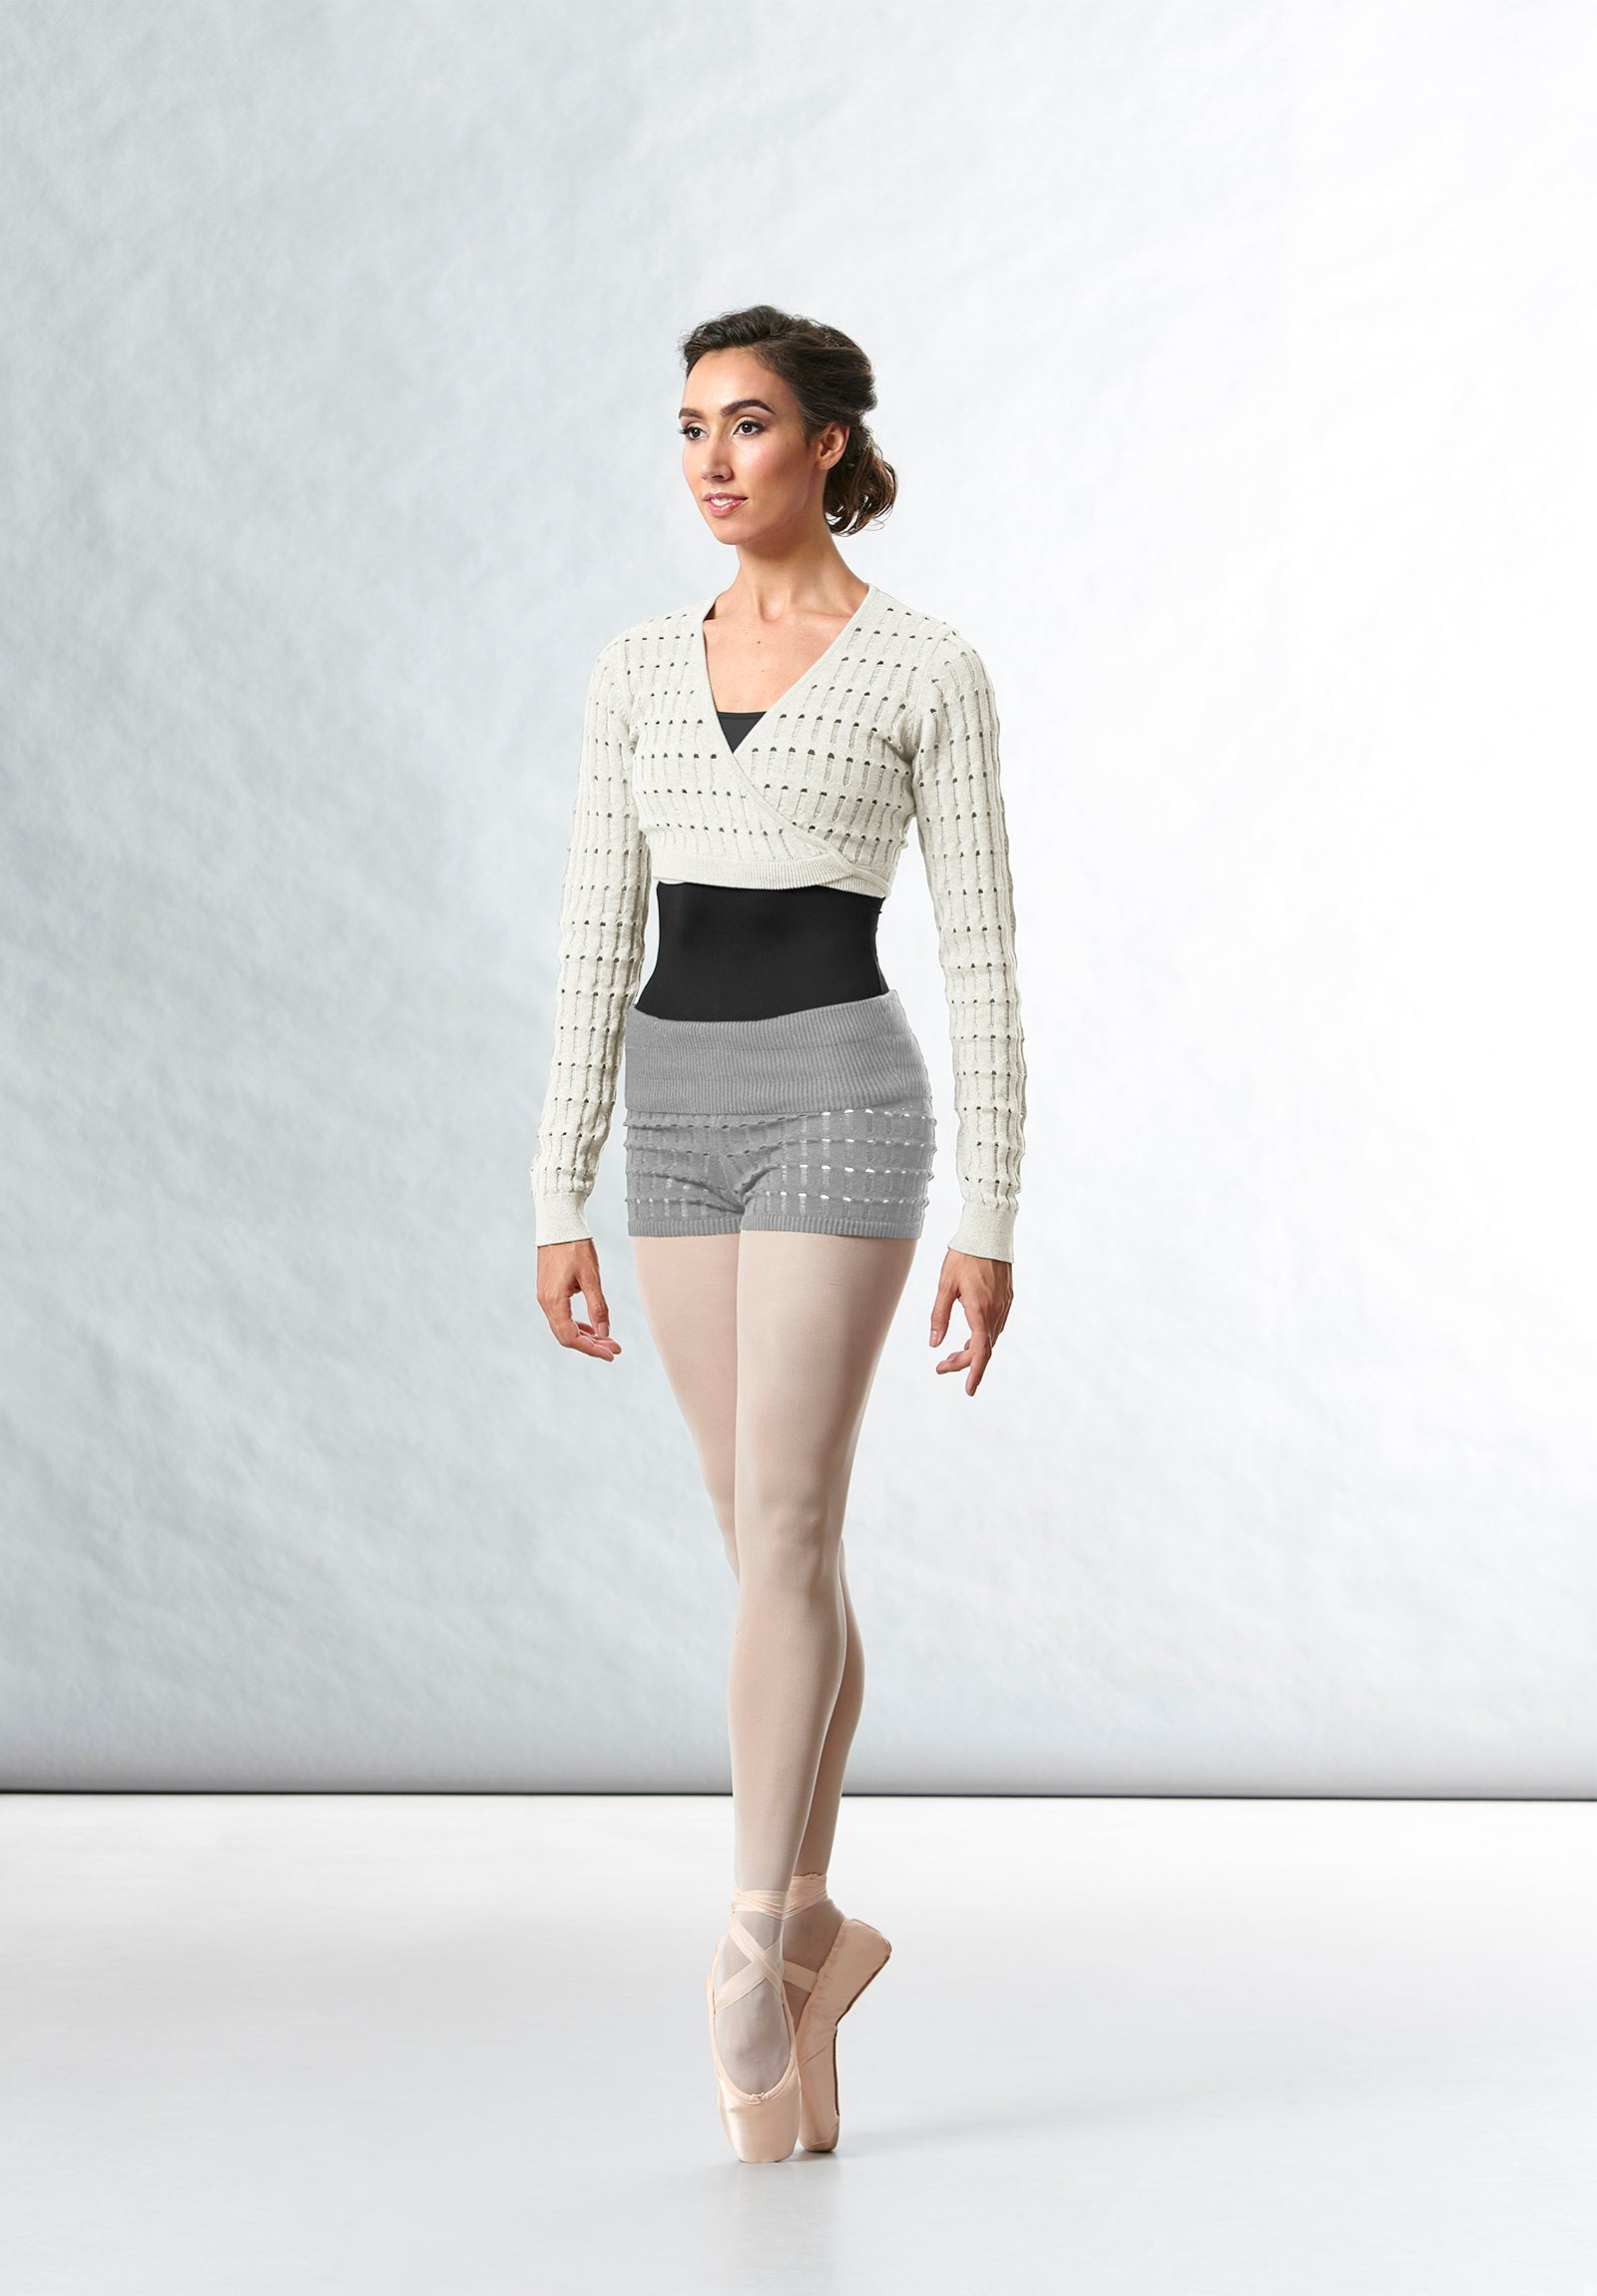 A female ballet dancer wearing a black BLOCH leotard, knitted wrap top and shorts